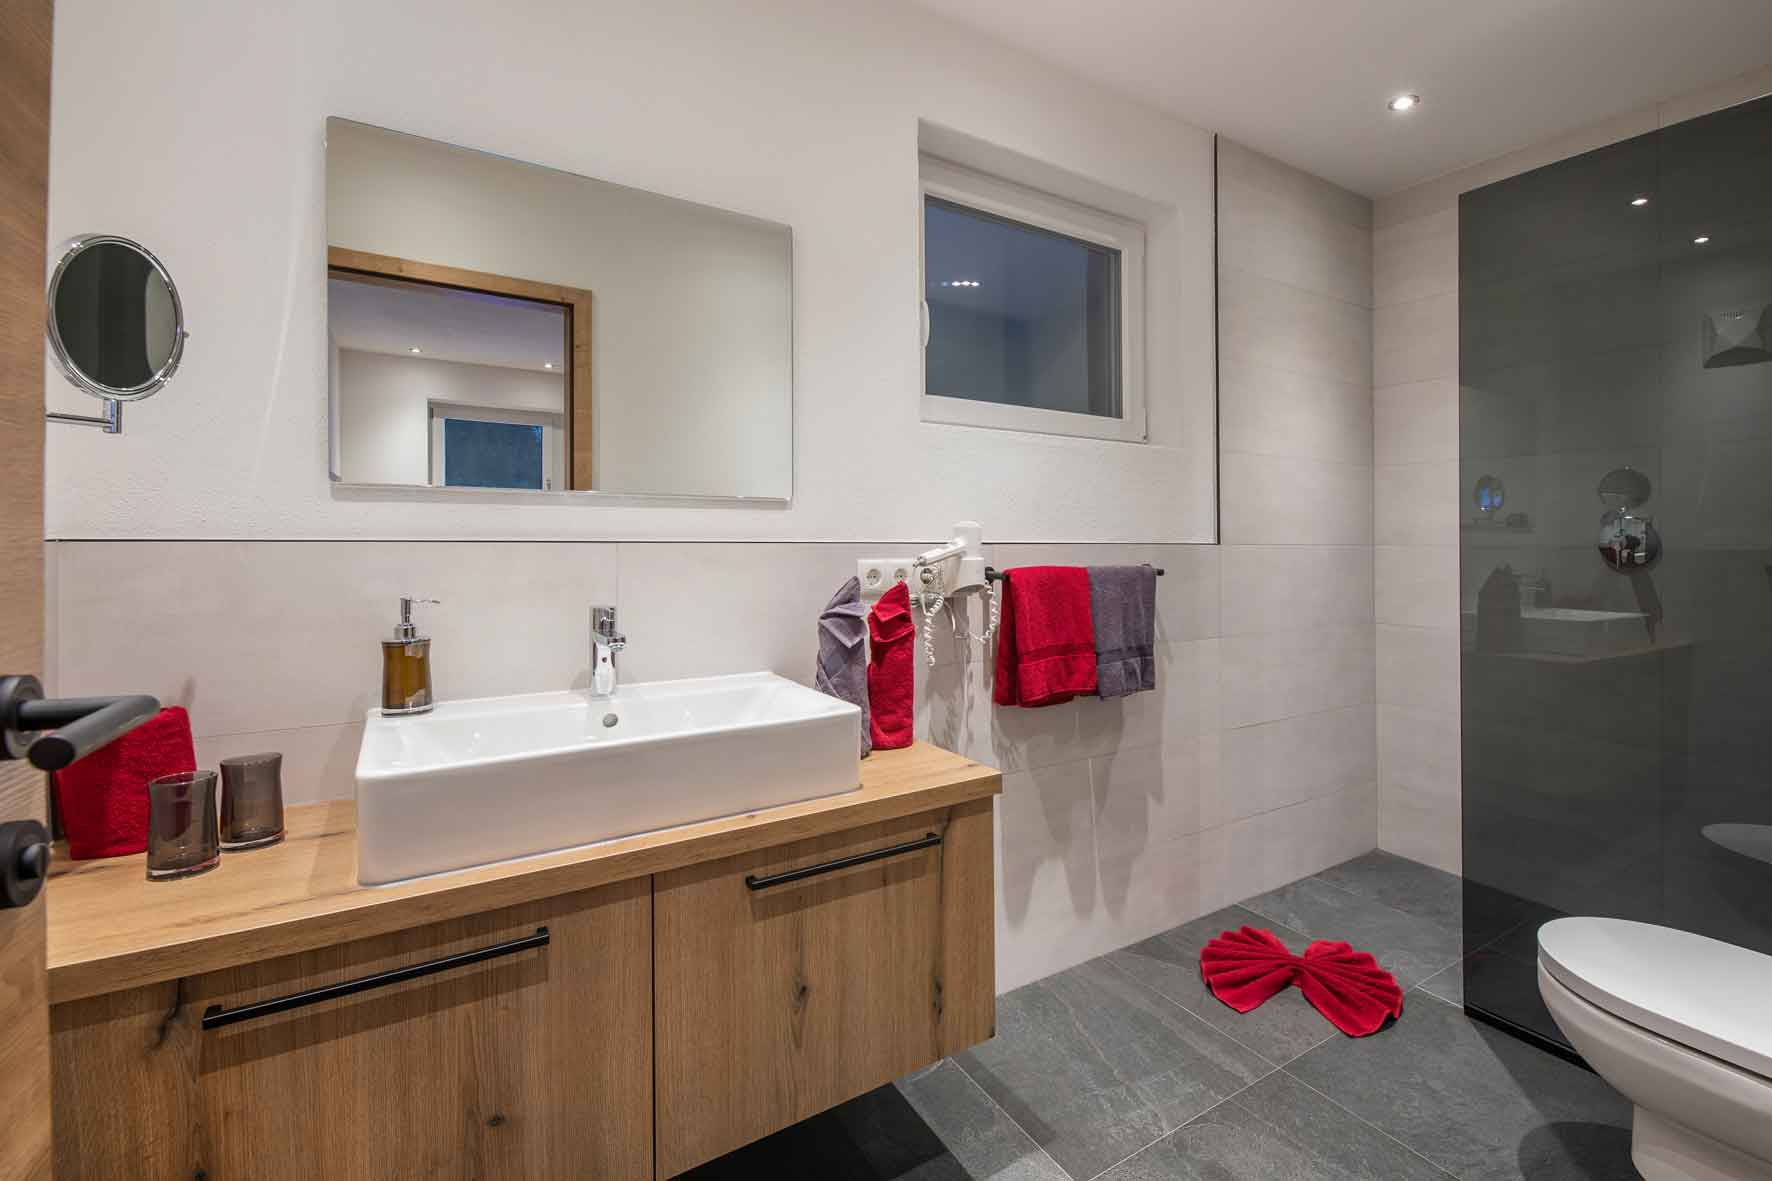 first class sanitary facility with walk-in shower and WC